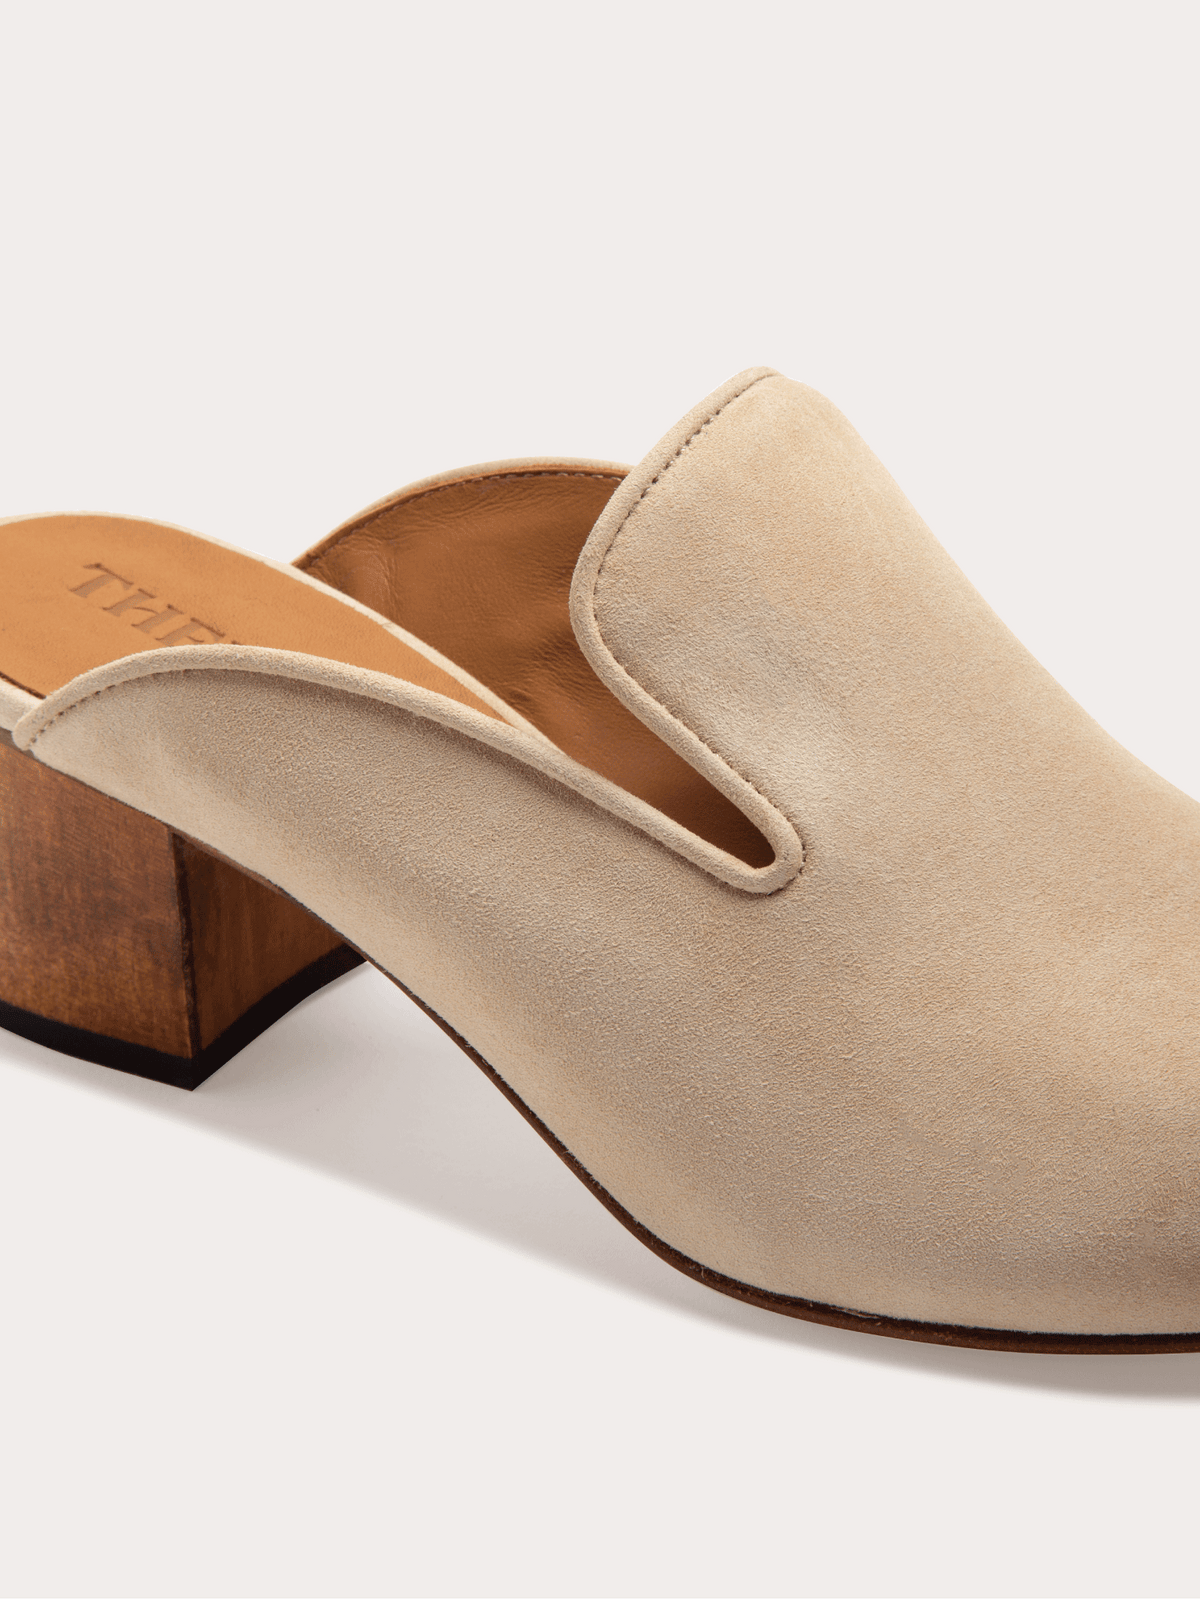 The Ava Mule in Wheat